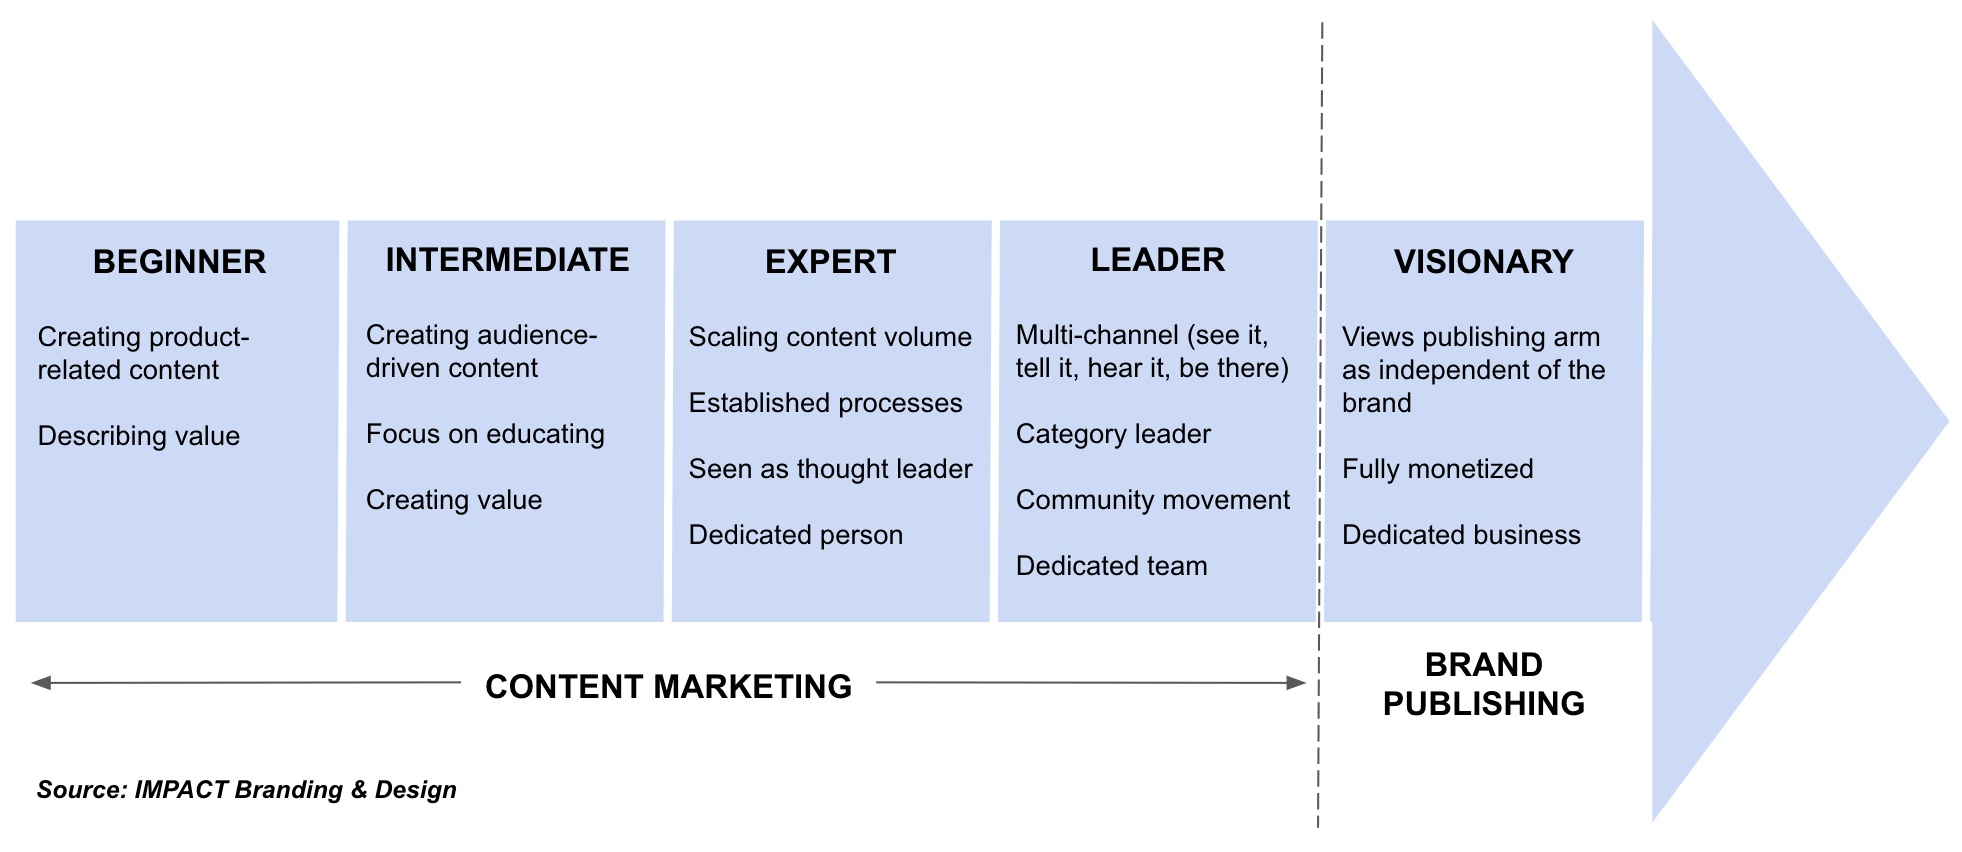 Brand Publishing Continuum by IMPACT